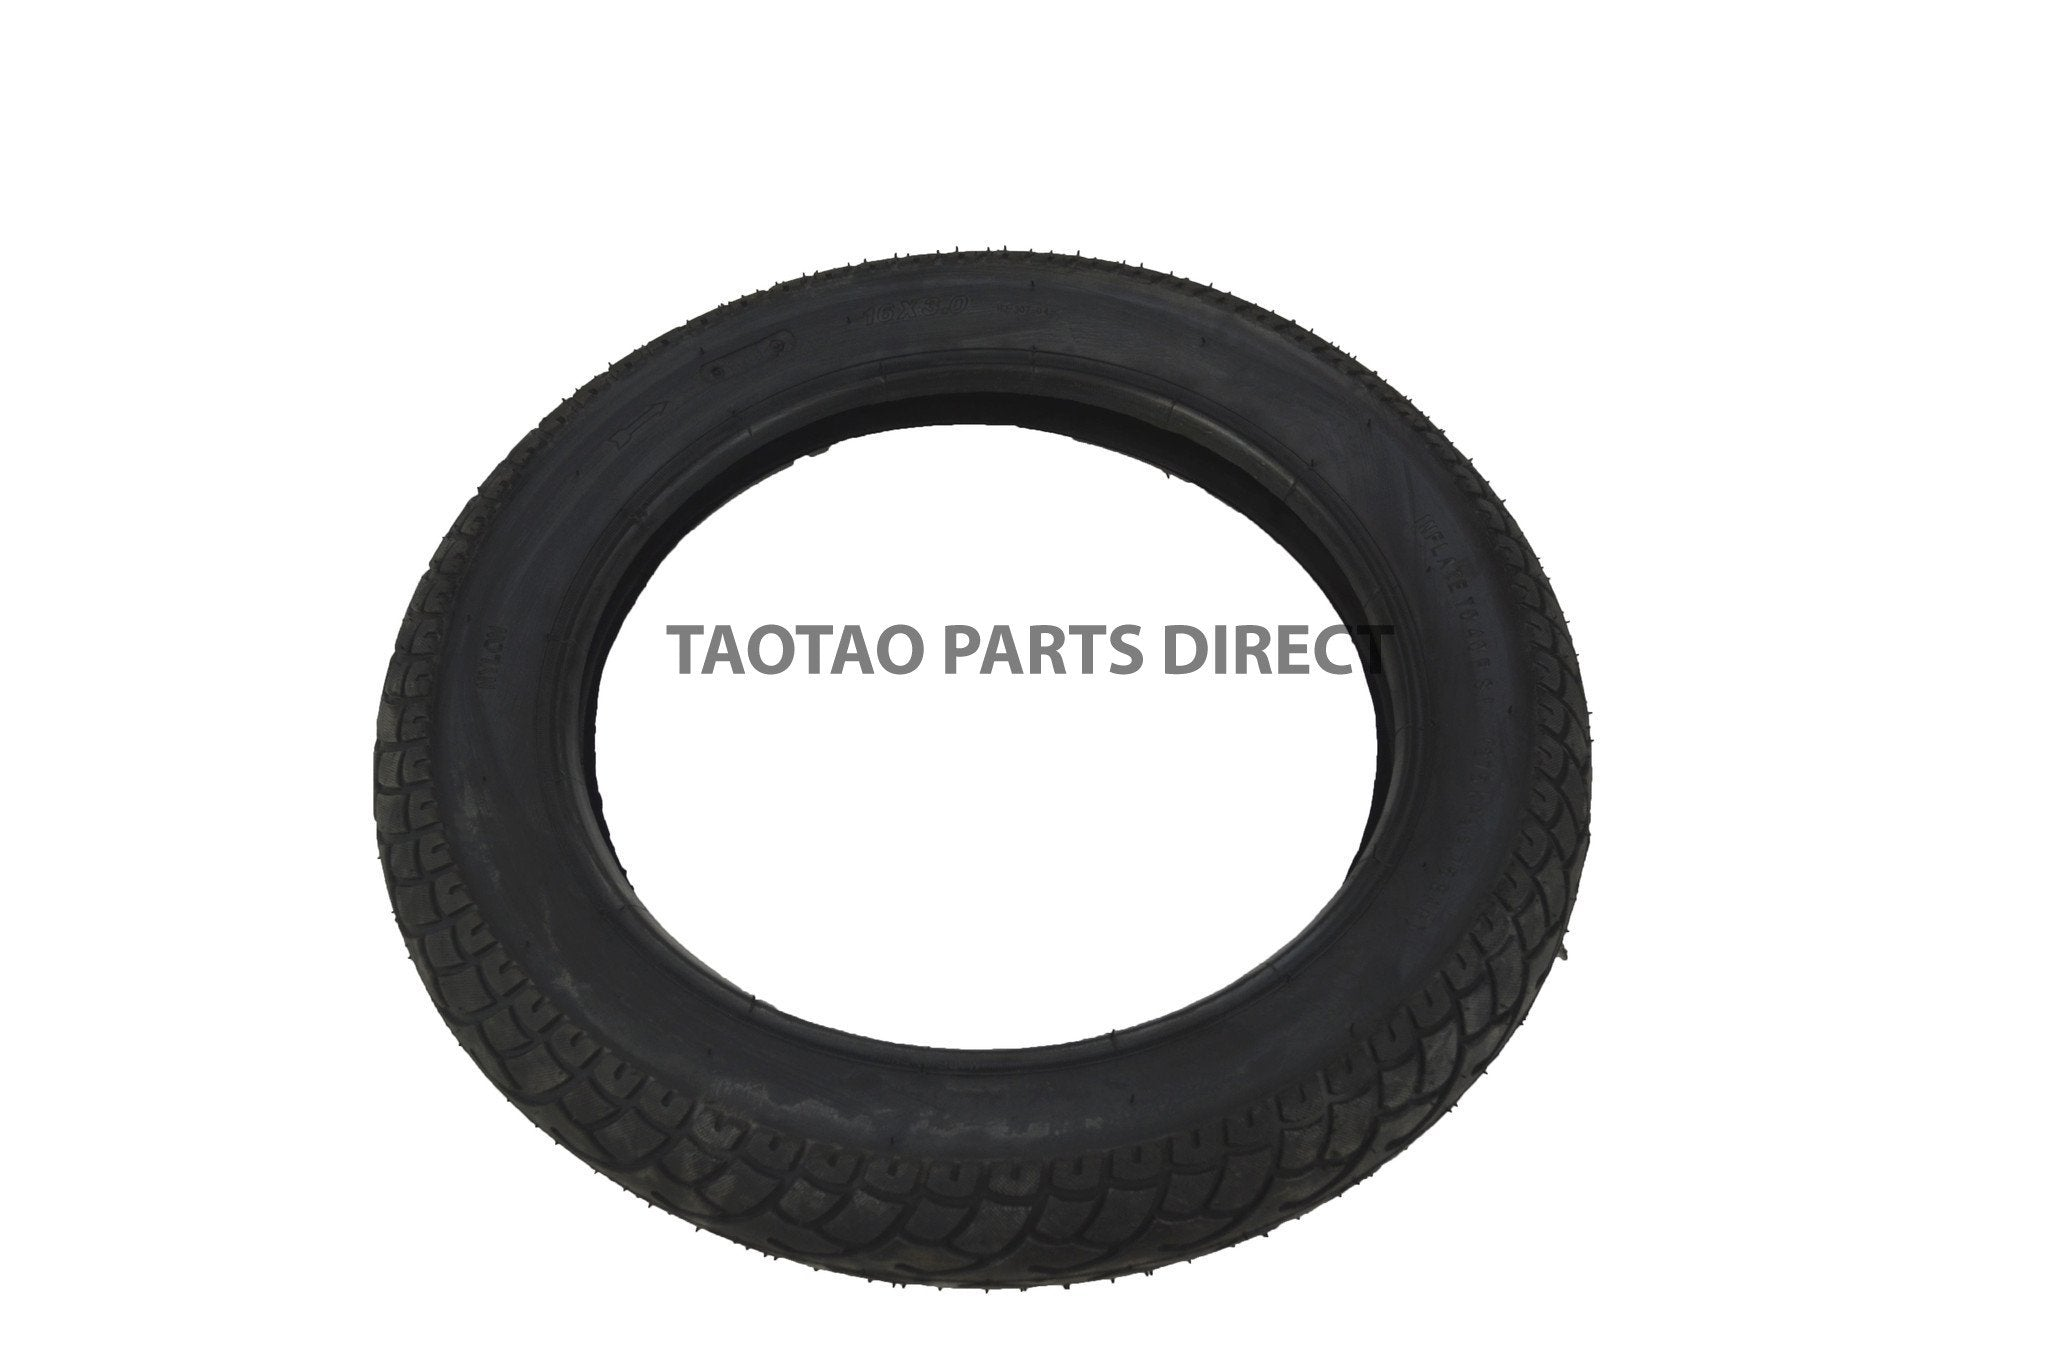 16-3.0 Tire - TaoTaoPartsDirect.com